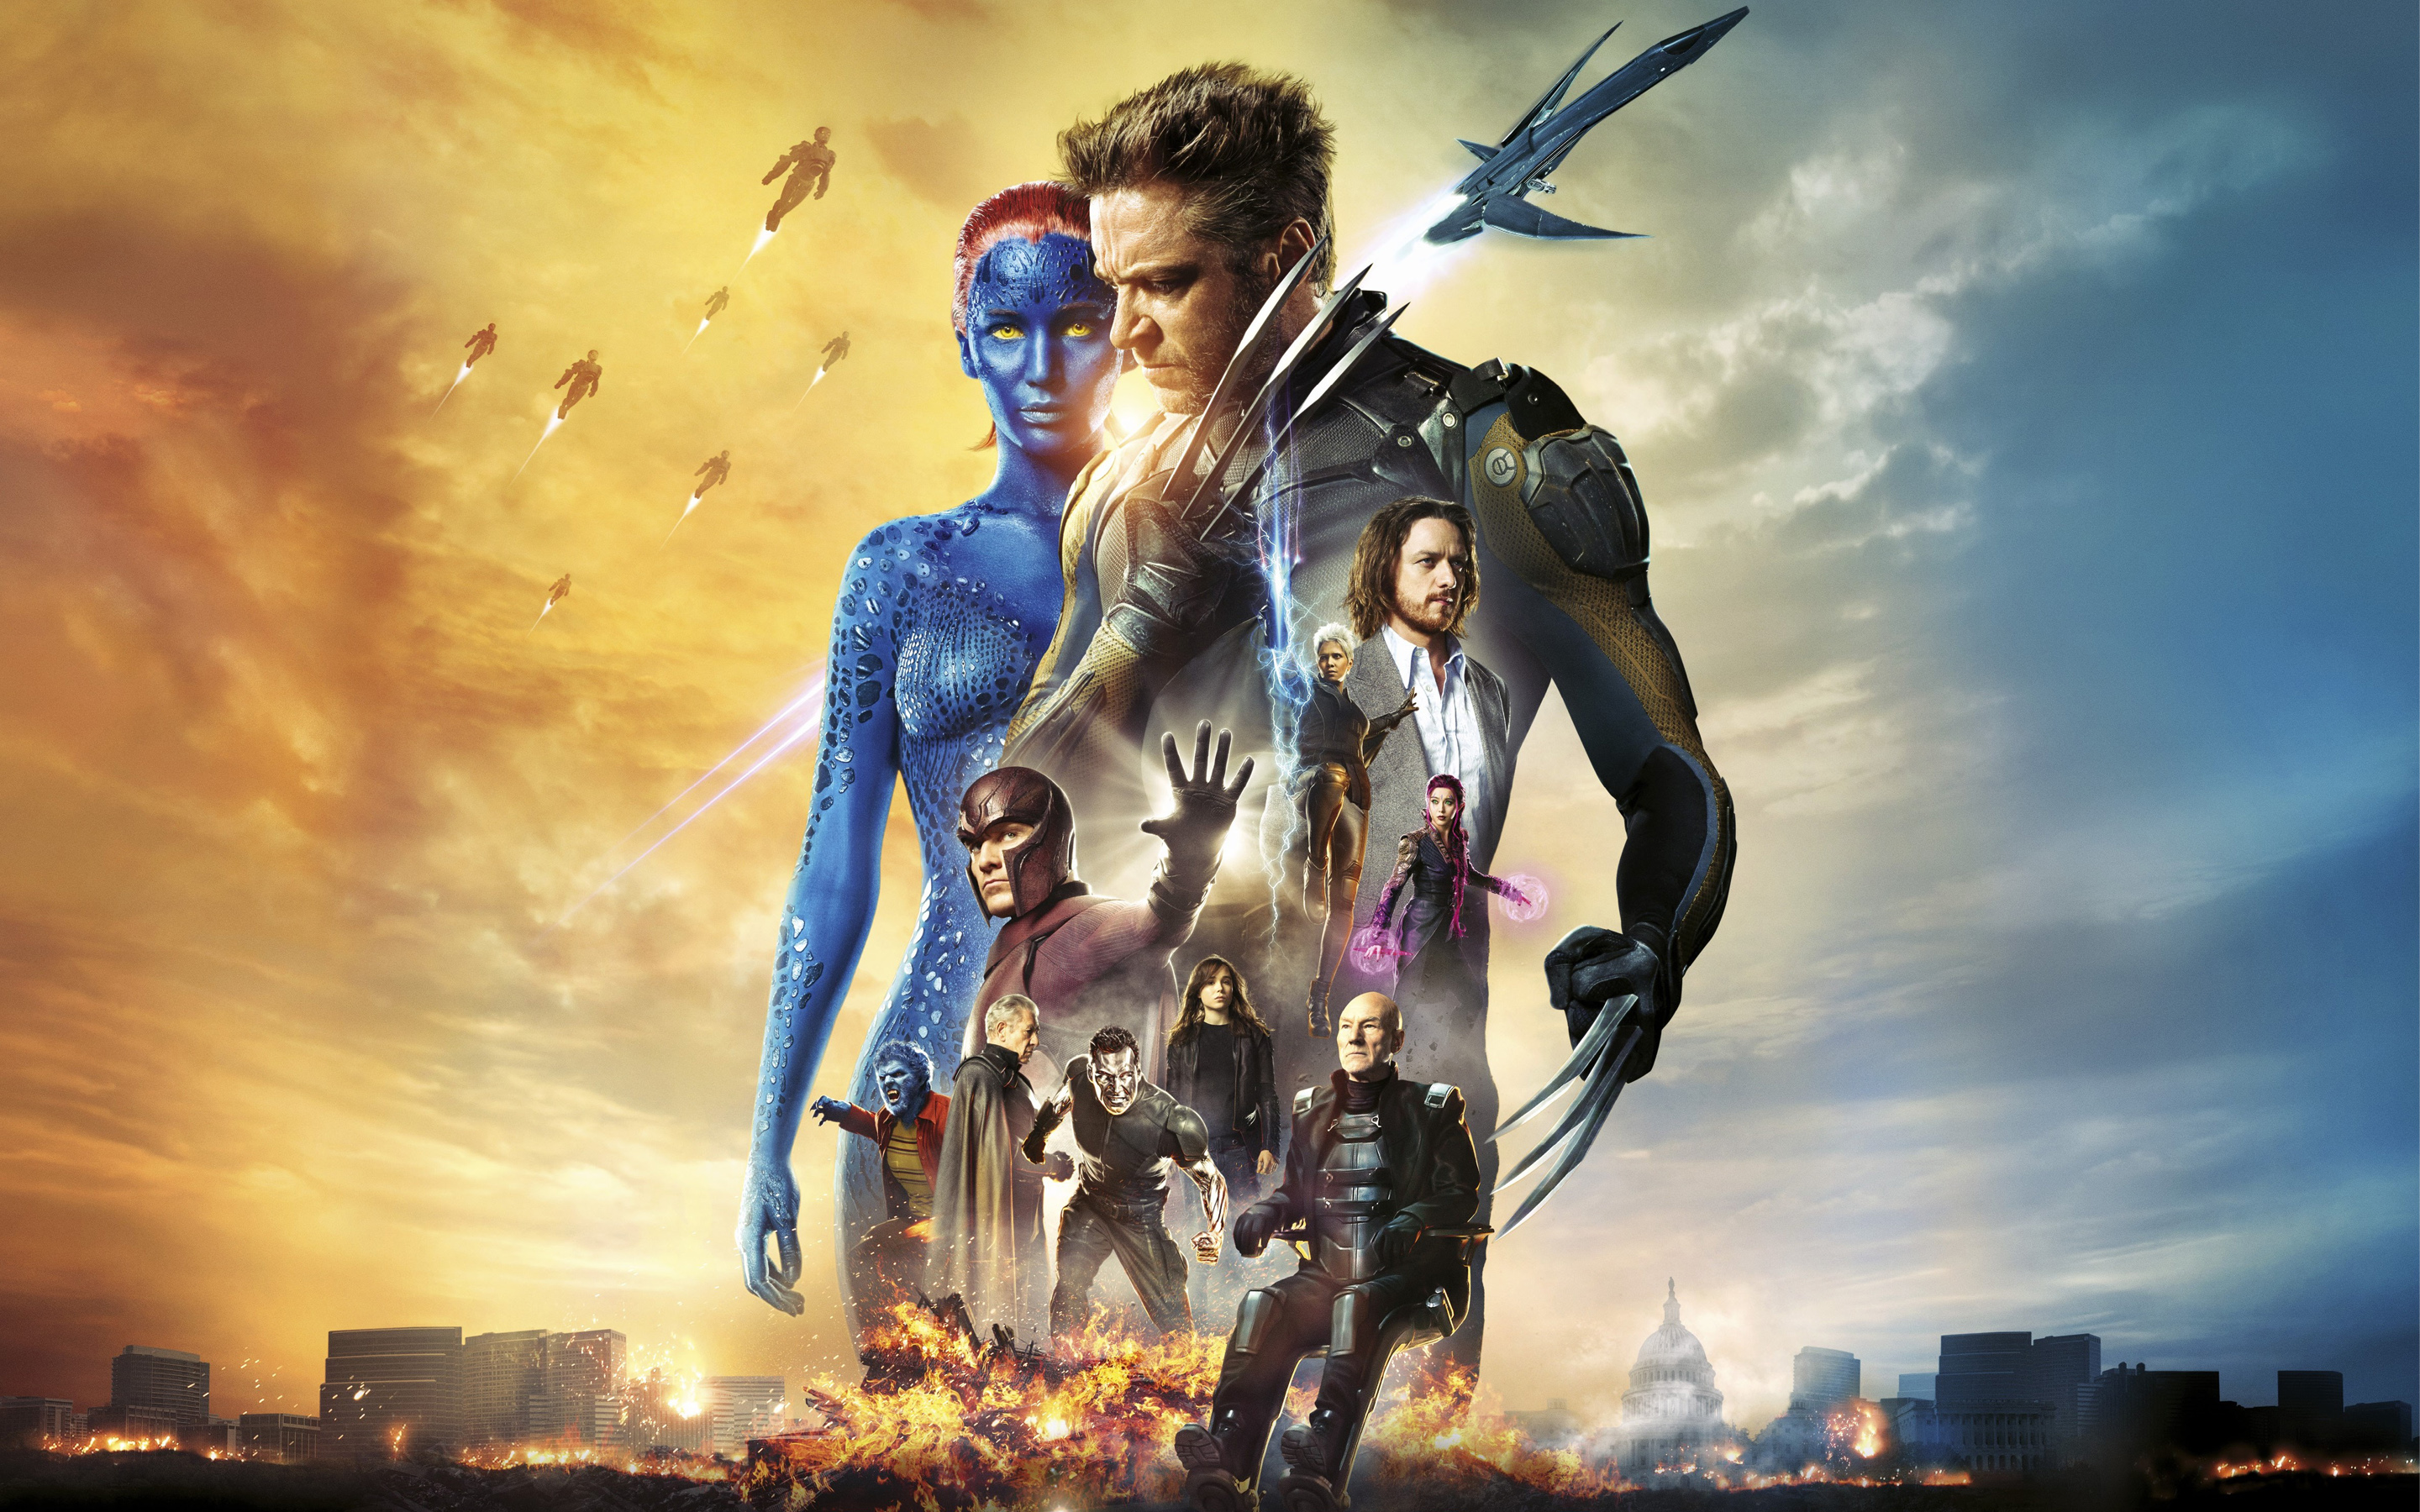 HD Wallpapers X Men Days of Future Past Movie